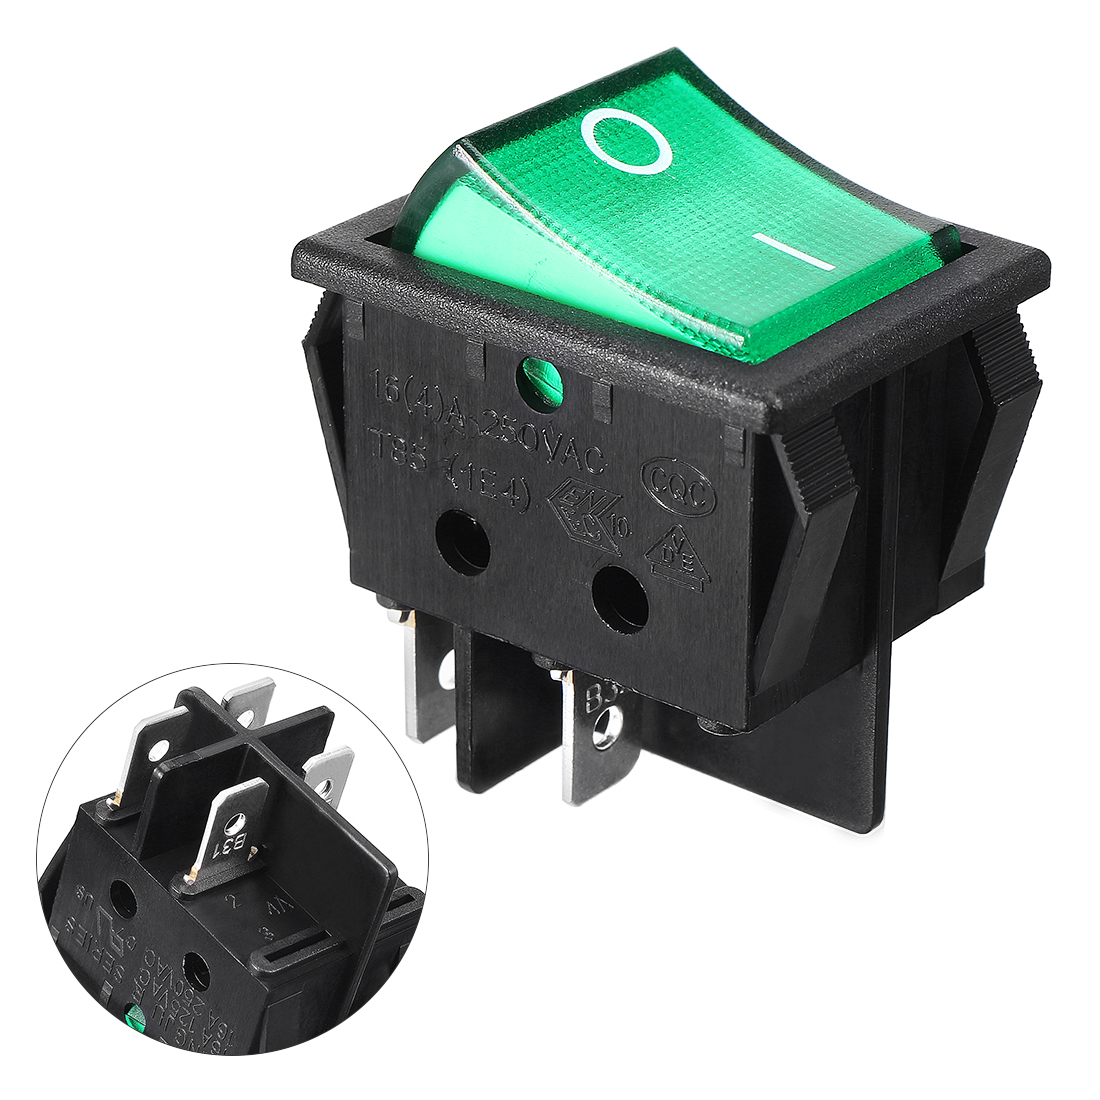 Green LED Light DPST 4 Pin Snap-in Rocker Boat Switch AC 250V 16A 125V 20A